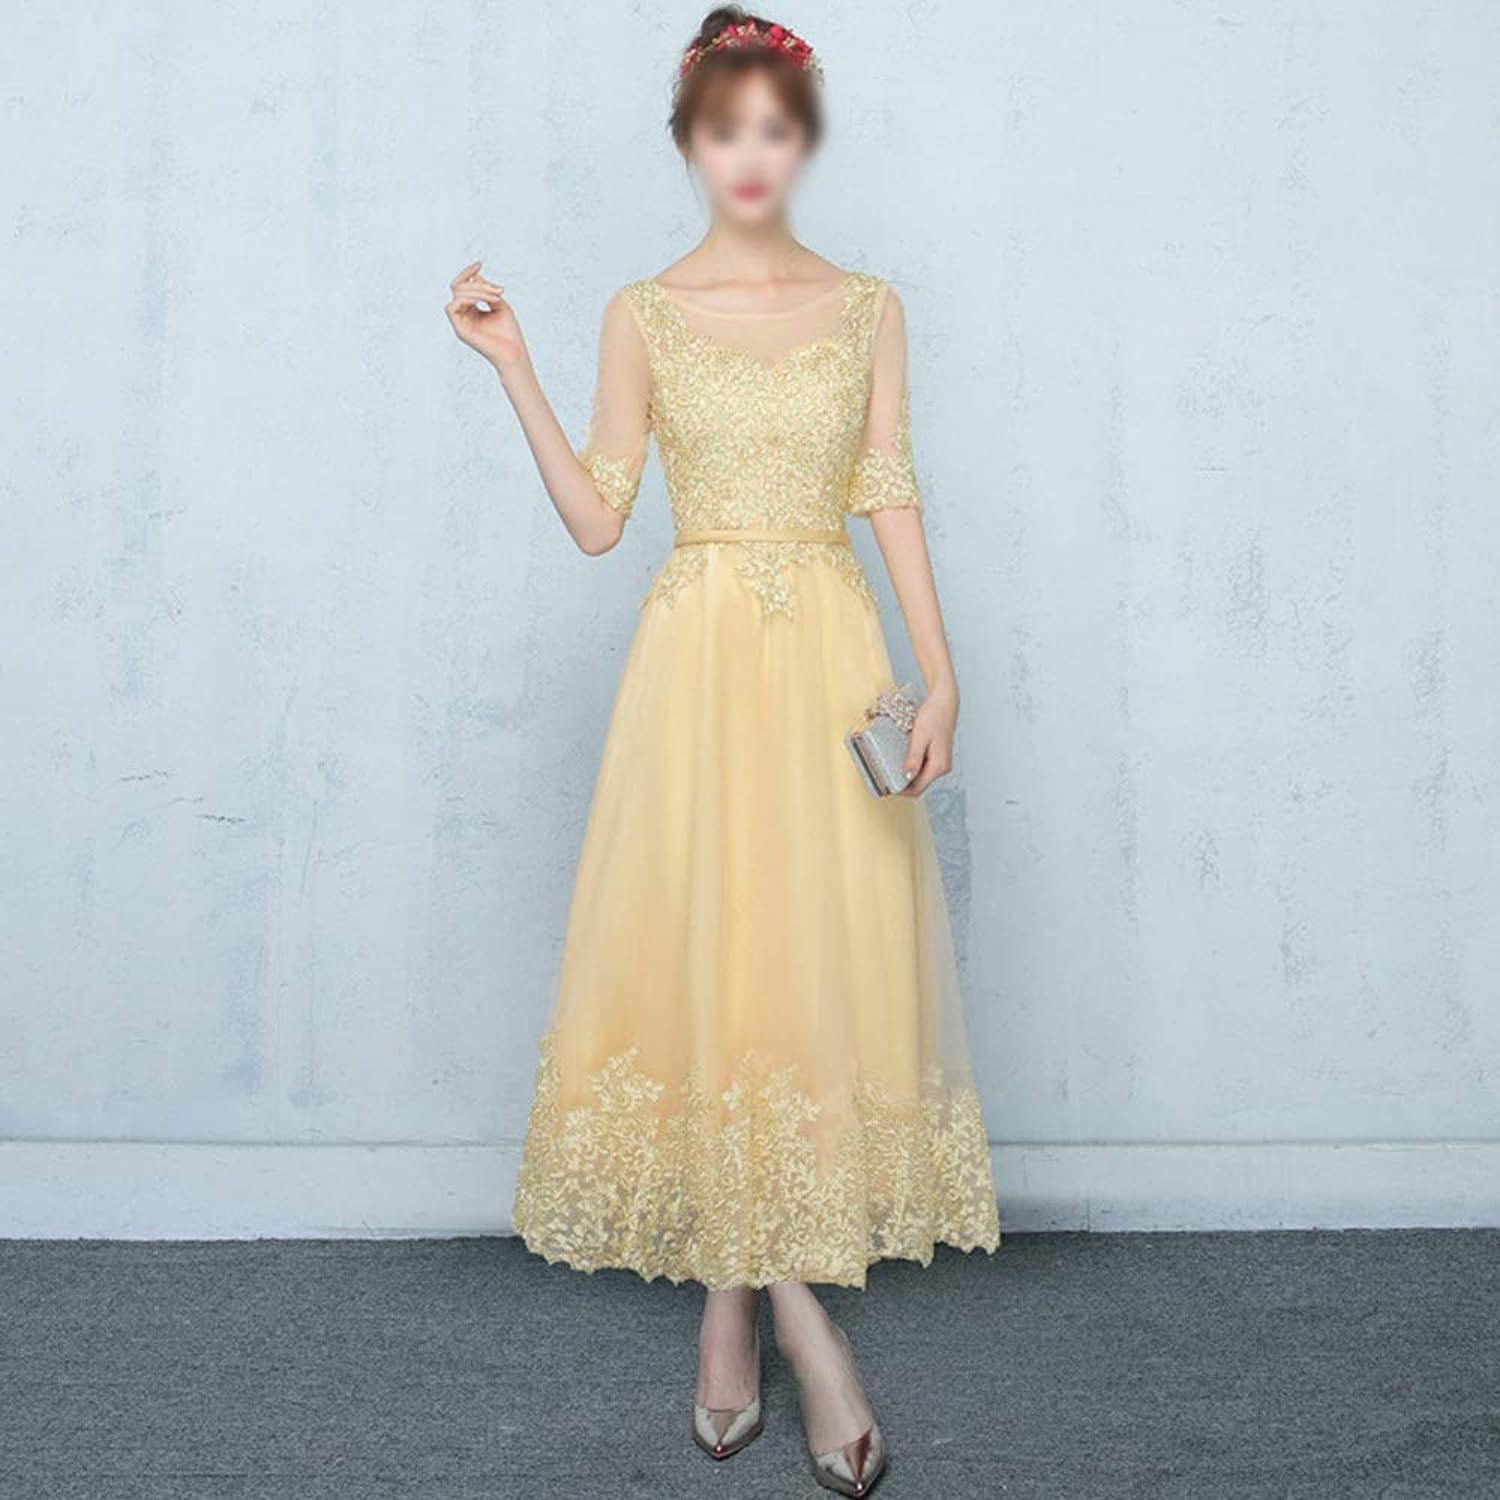 Sugoishop Womens Long Sleeves Slim golden Lace Embroidery Beads Evening Formal Dress (color   goldena, Size   XL)